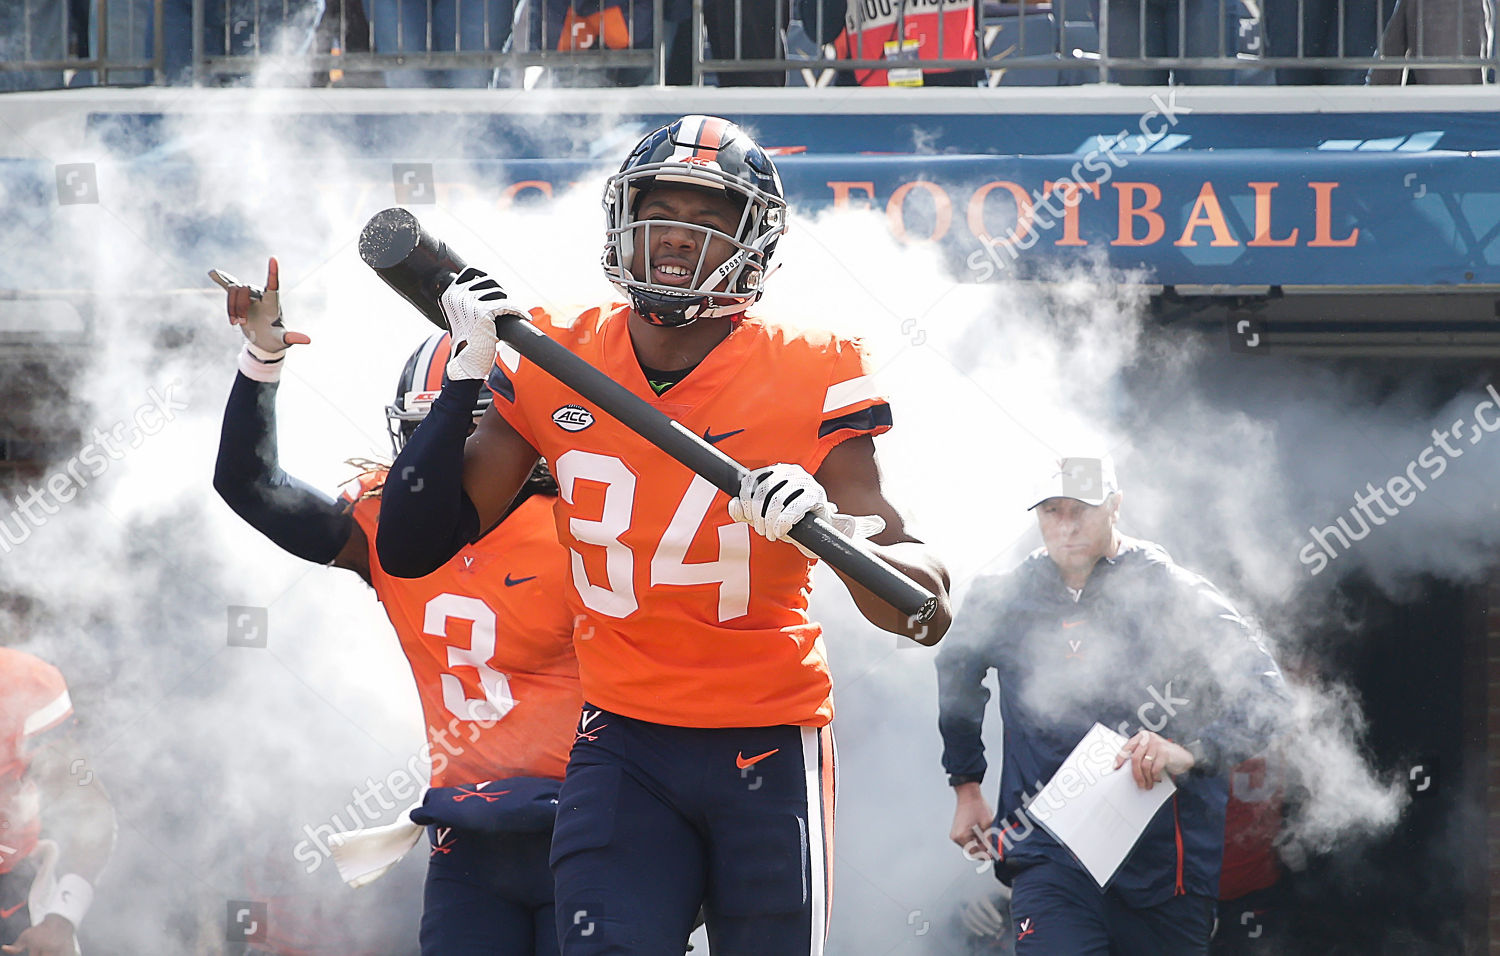 Virginia Cavaliers CB 34 Bryce Hall carries Editorial Stock